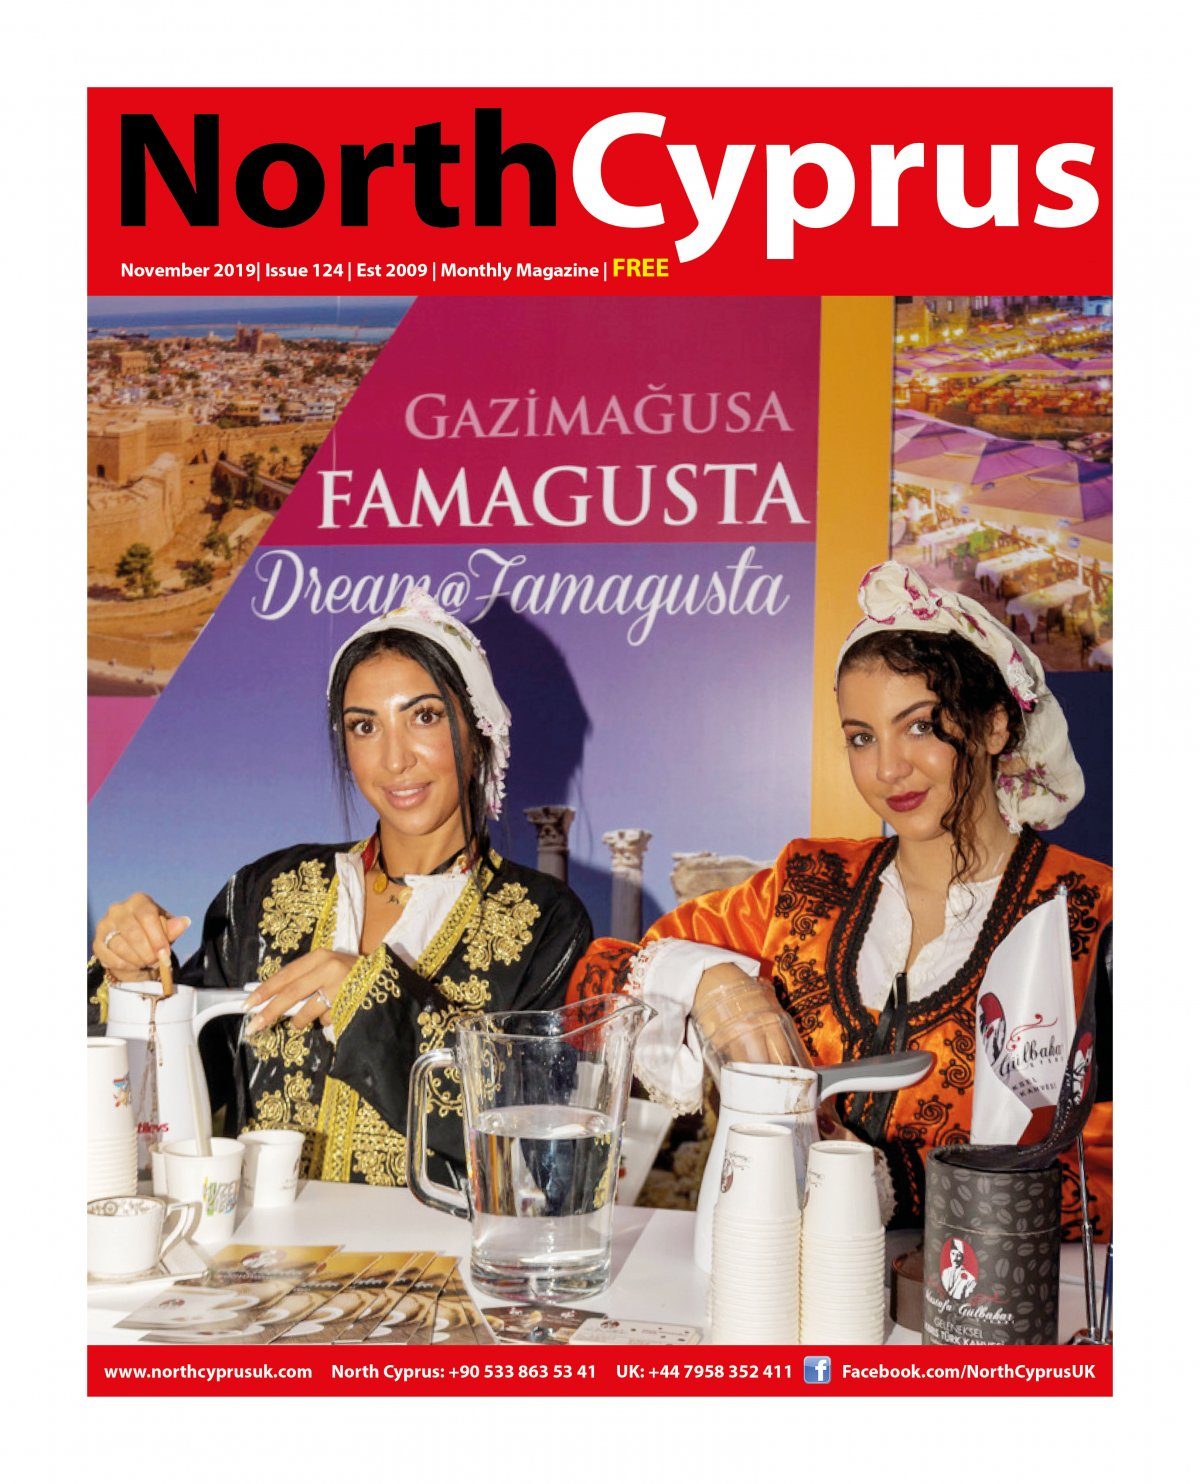 North Cyprus UK - 15.11.2019 Manşeti